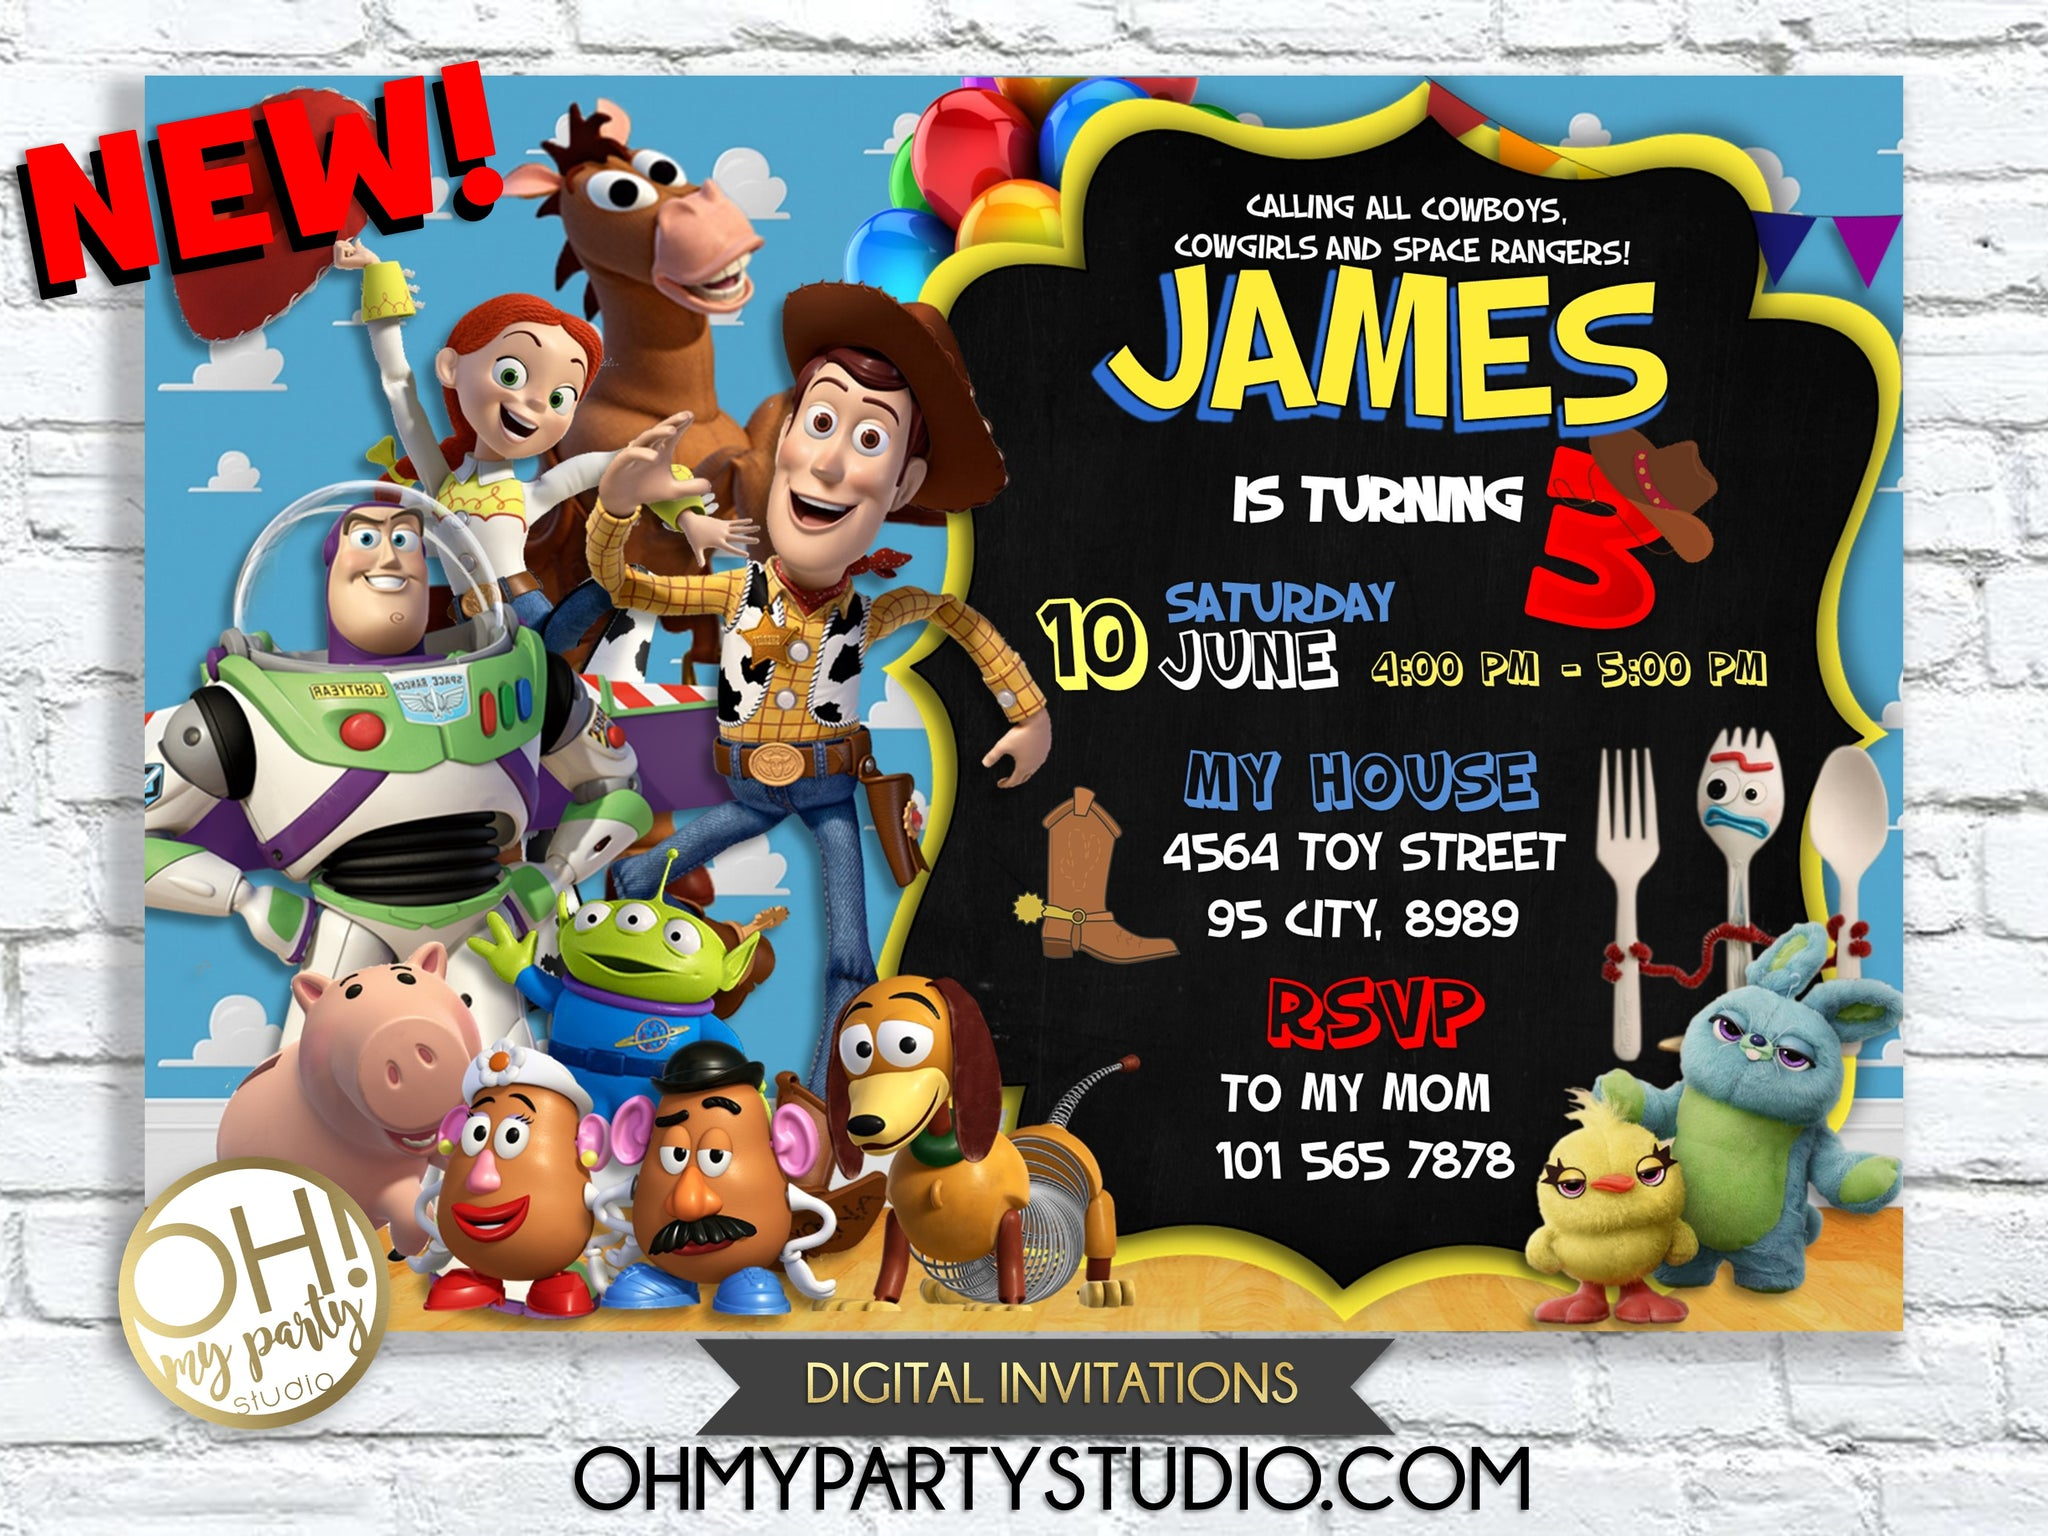 TOY STORY 4 BIRTHDAY INVITATION, TOY STORY BIRTHDAY INVITATION, TOY STORY PARTY, TOY STORY BIRTHDAY, TOY STORY BIRTHDAY PARTY